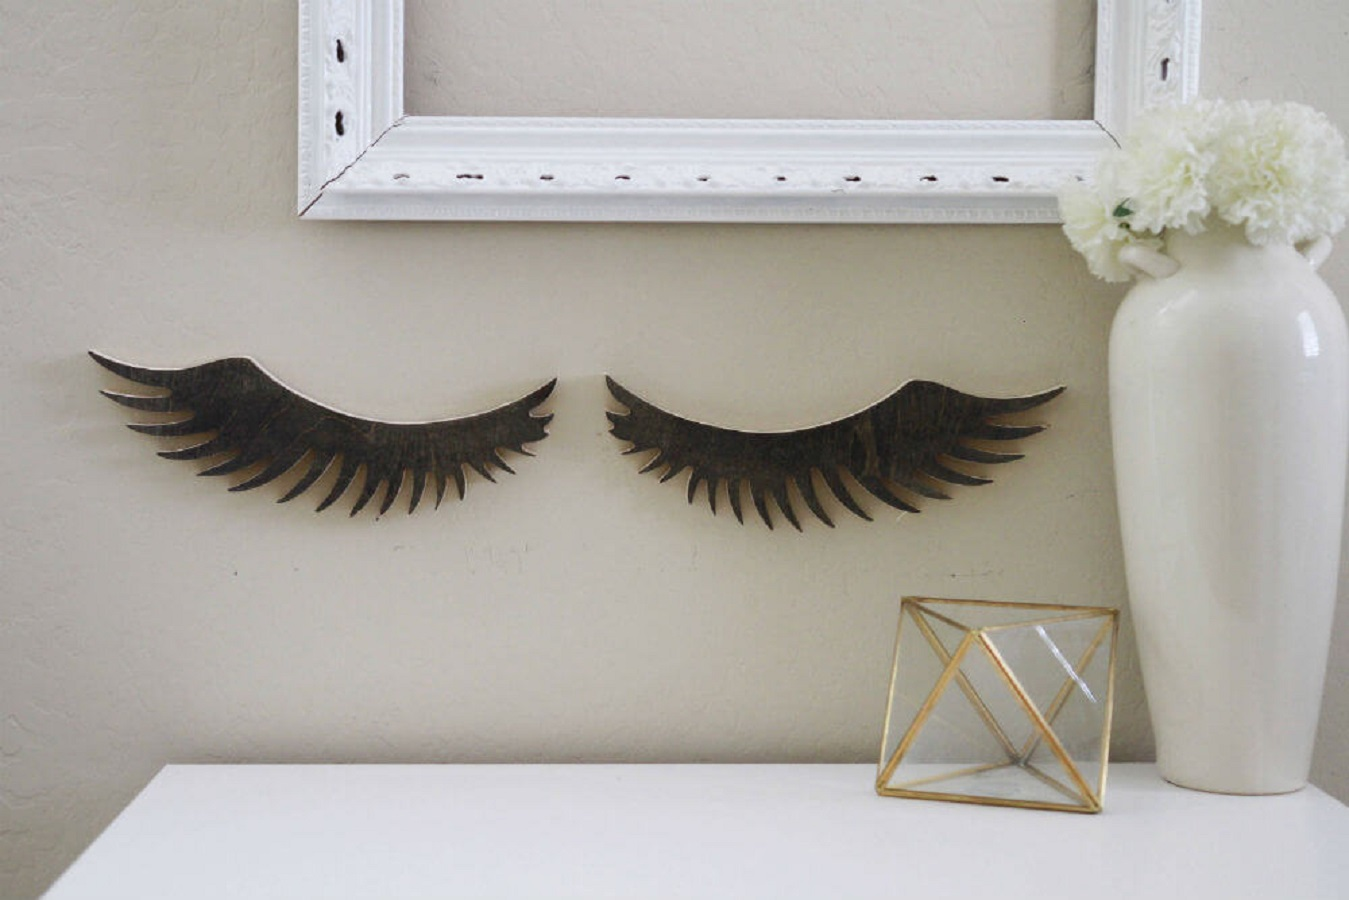 Girly wood eyelashes cutout https://homebnc.com/best-etsy-bathroom-accessories-ideas-to-buy/